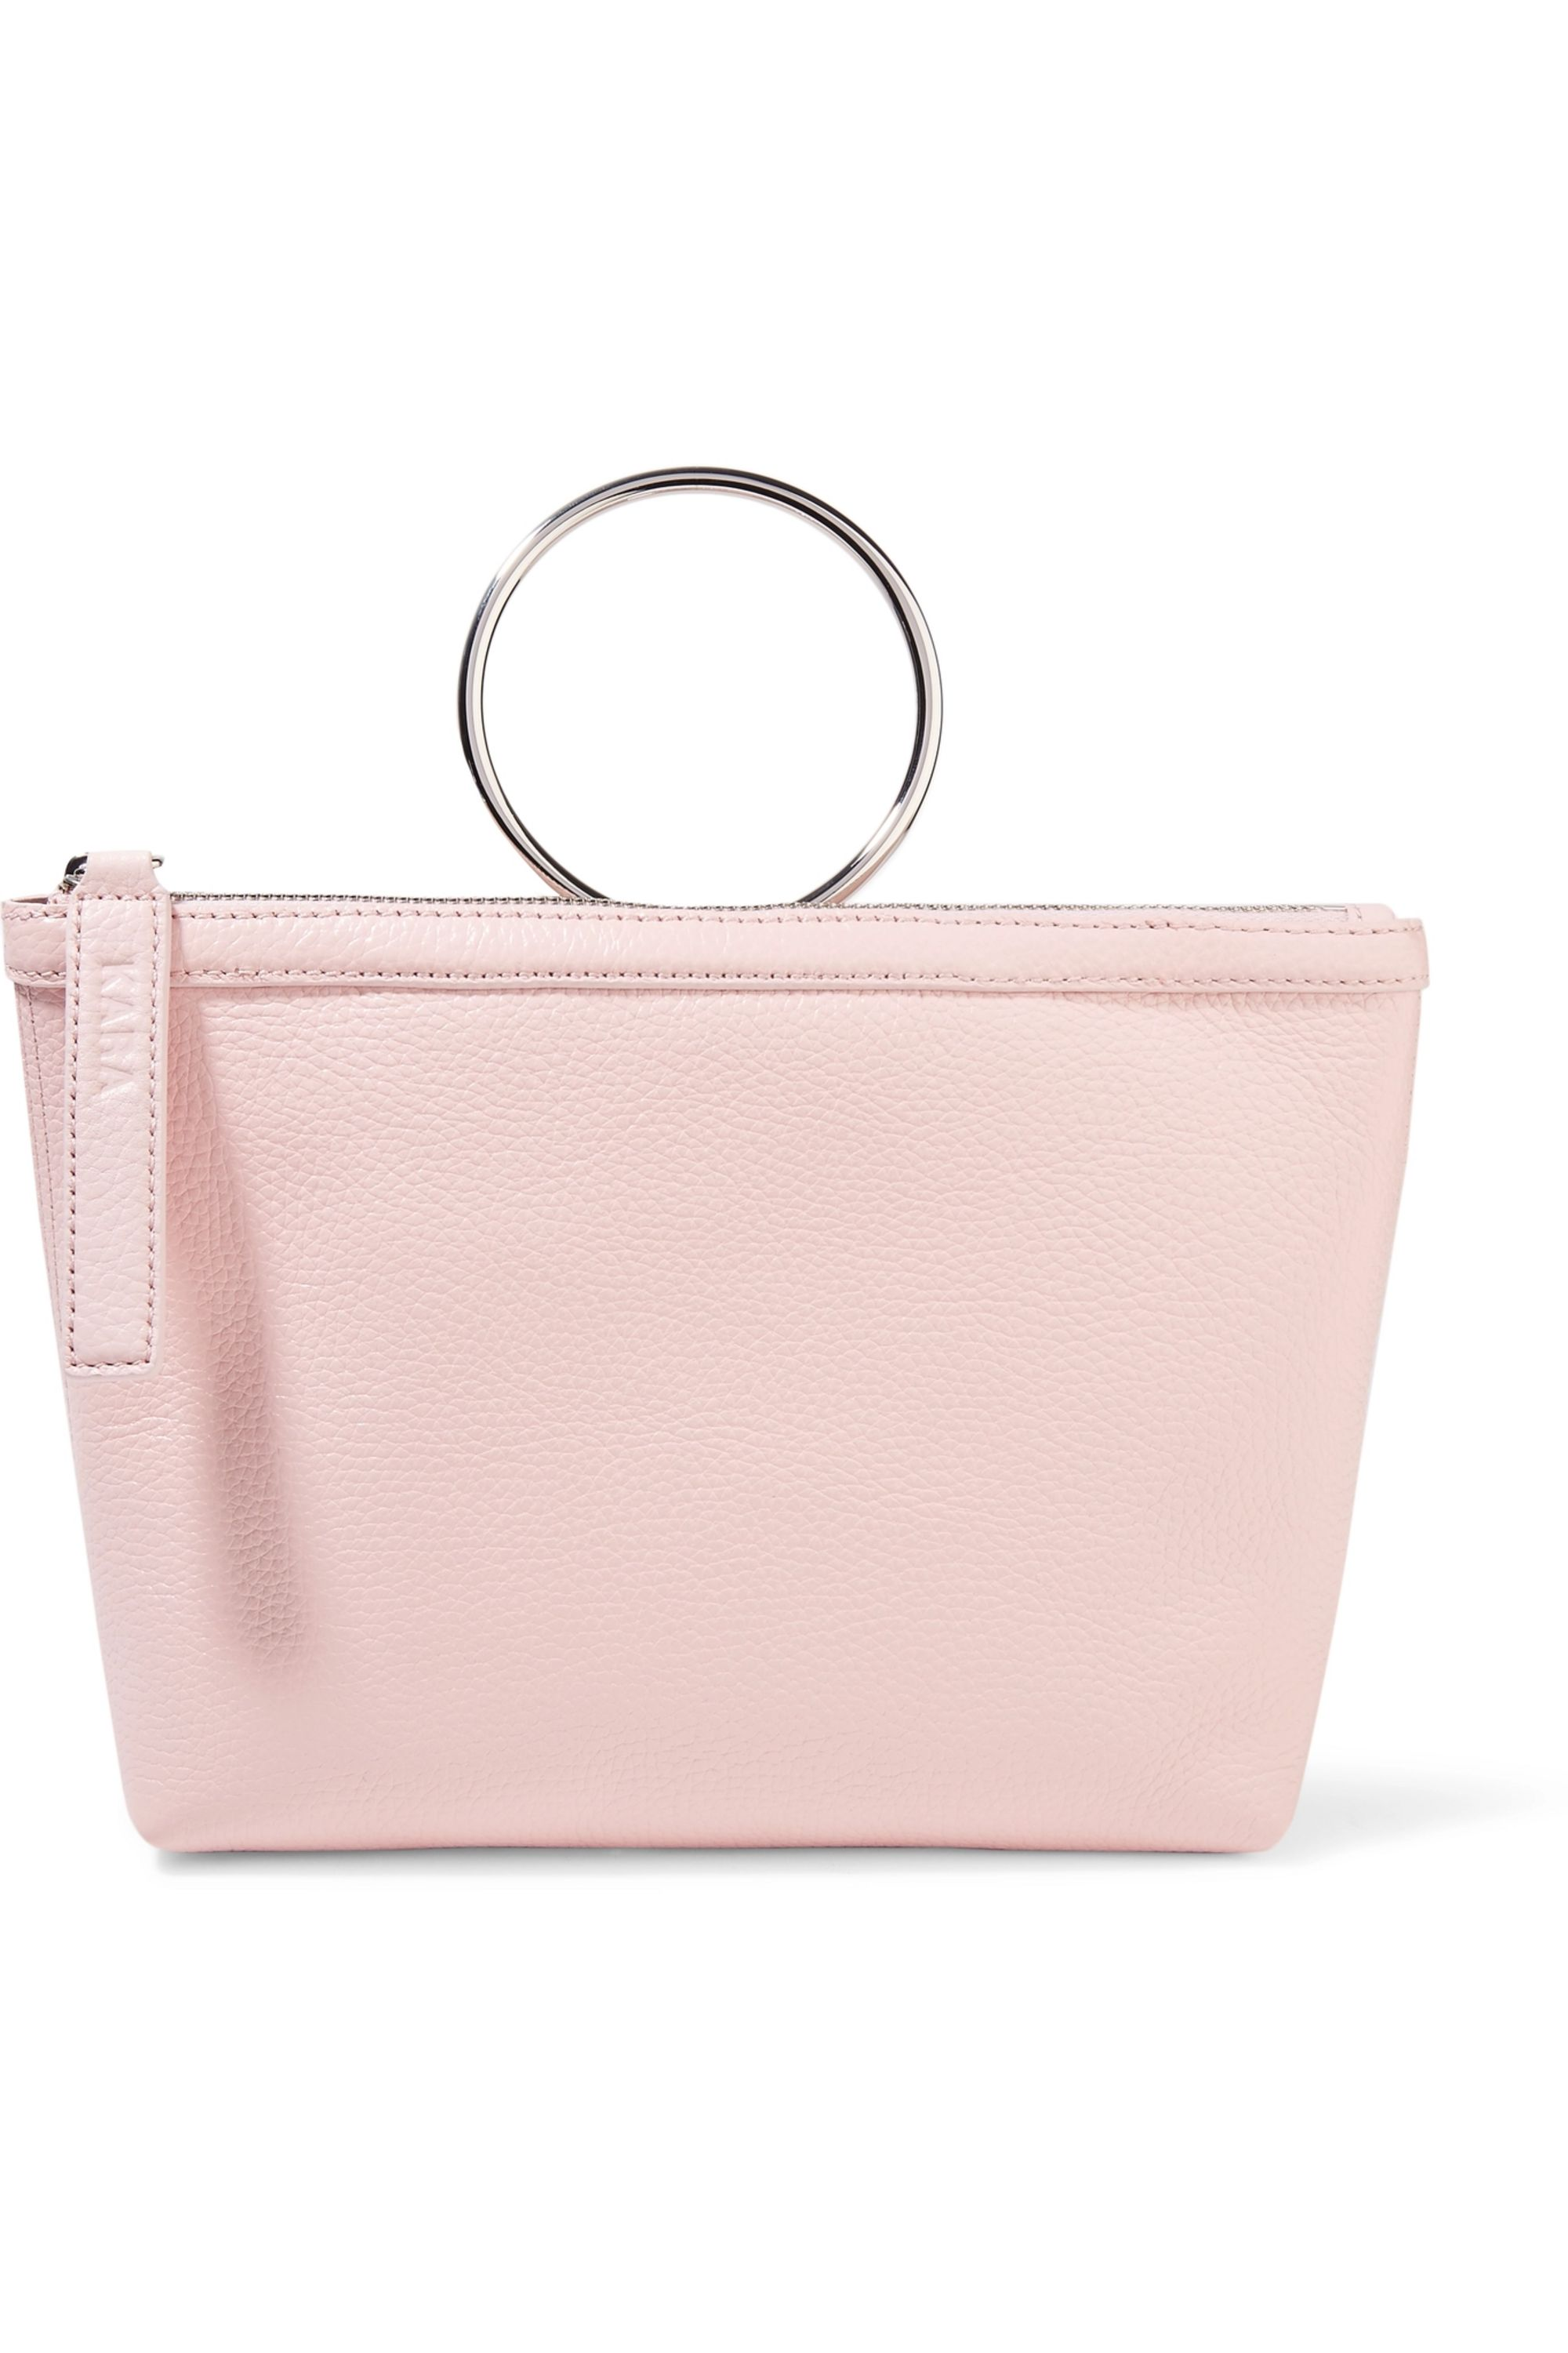 KARA Ring textured-leather clutch